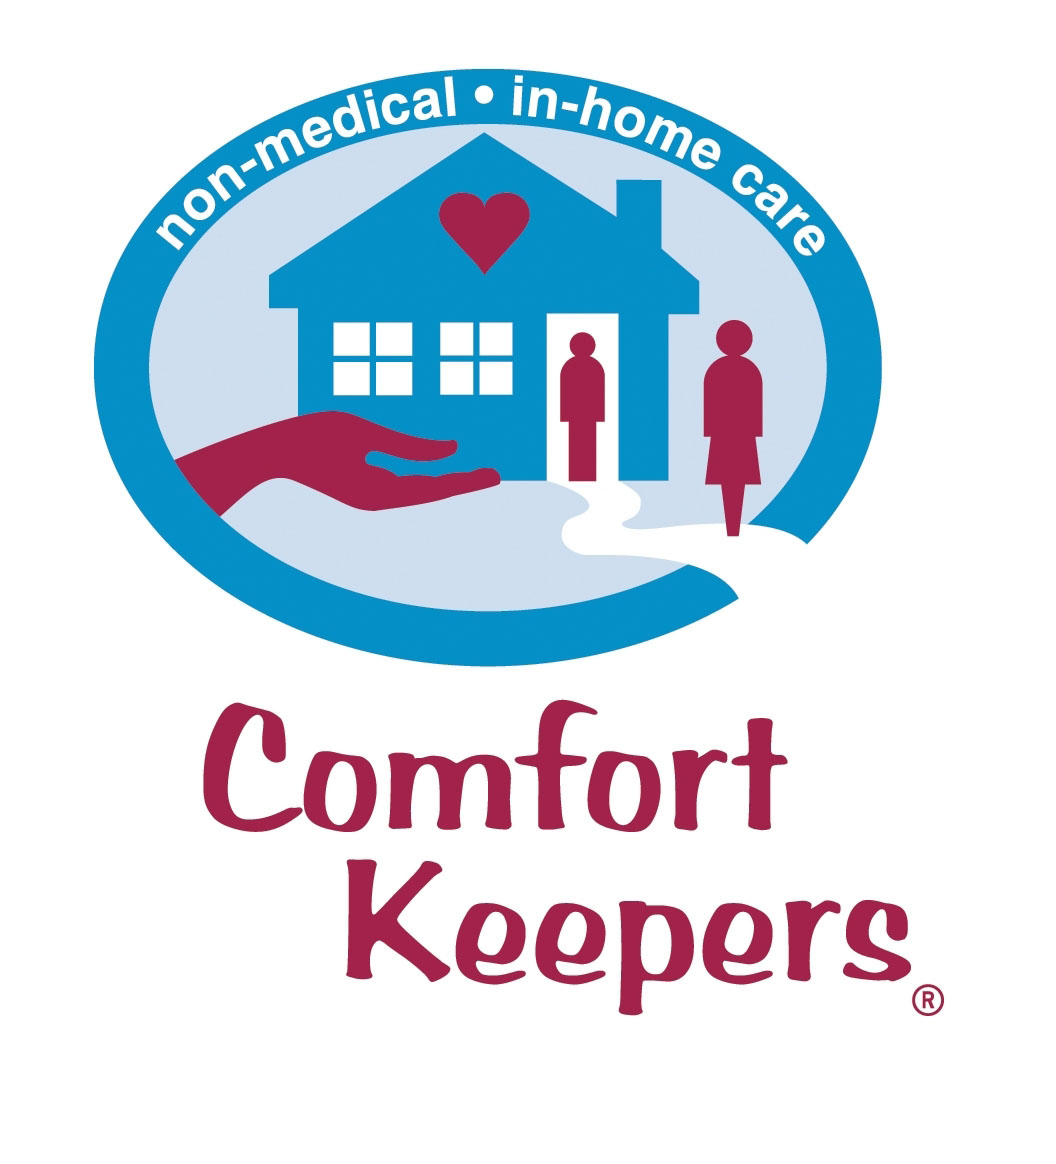 A. Comfort Keepers (Diamond)